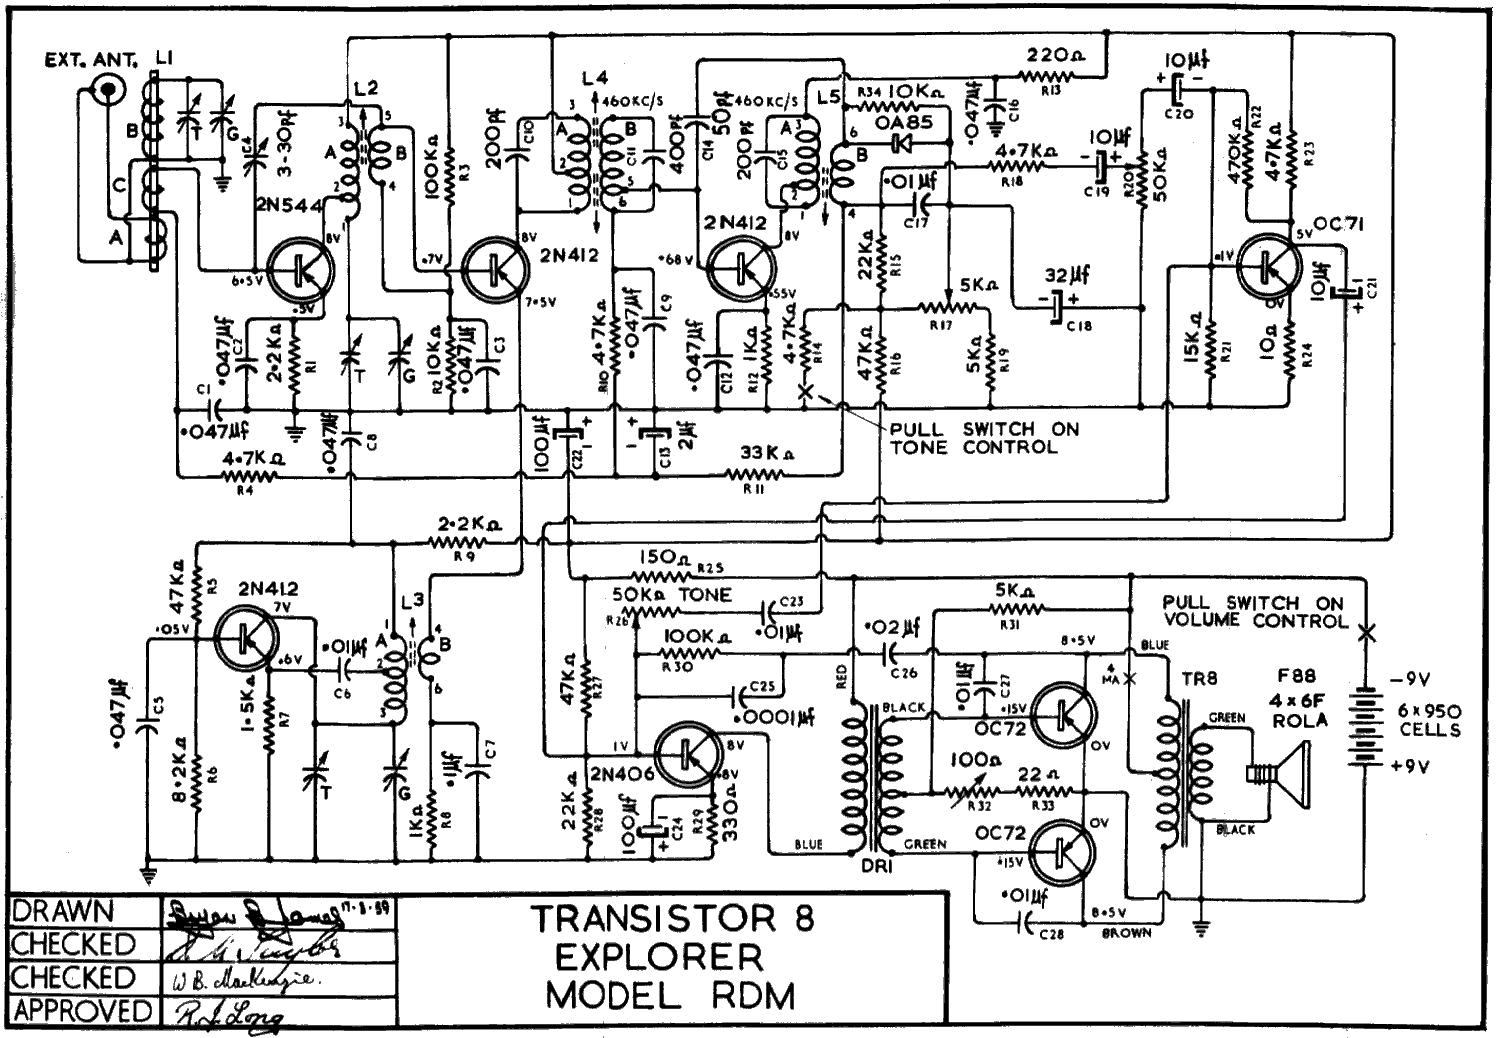 1959 Ultimate RDM Schematic